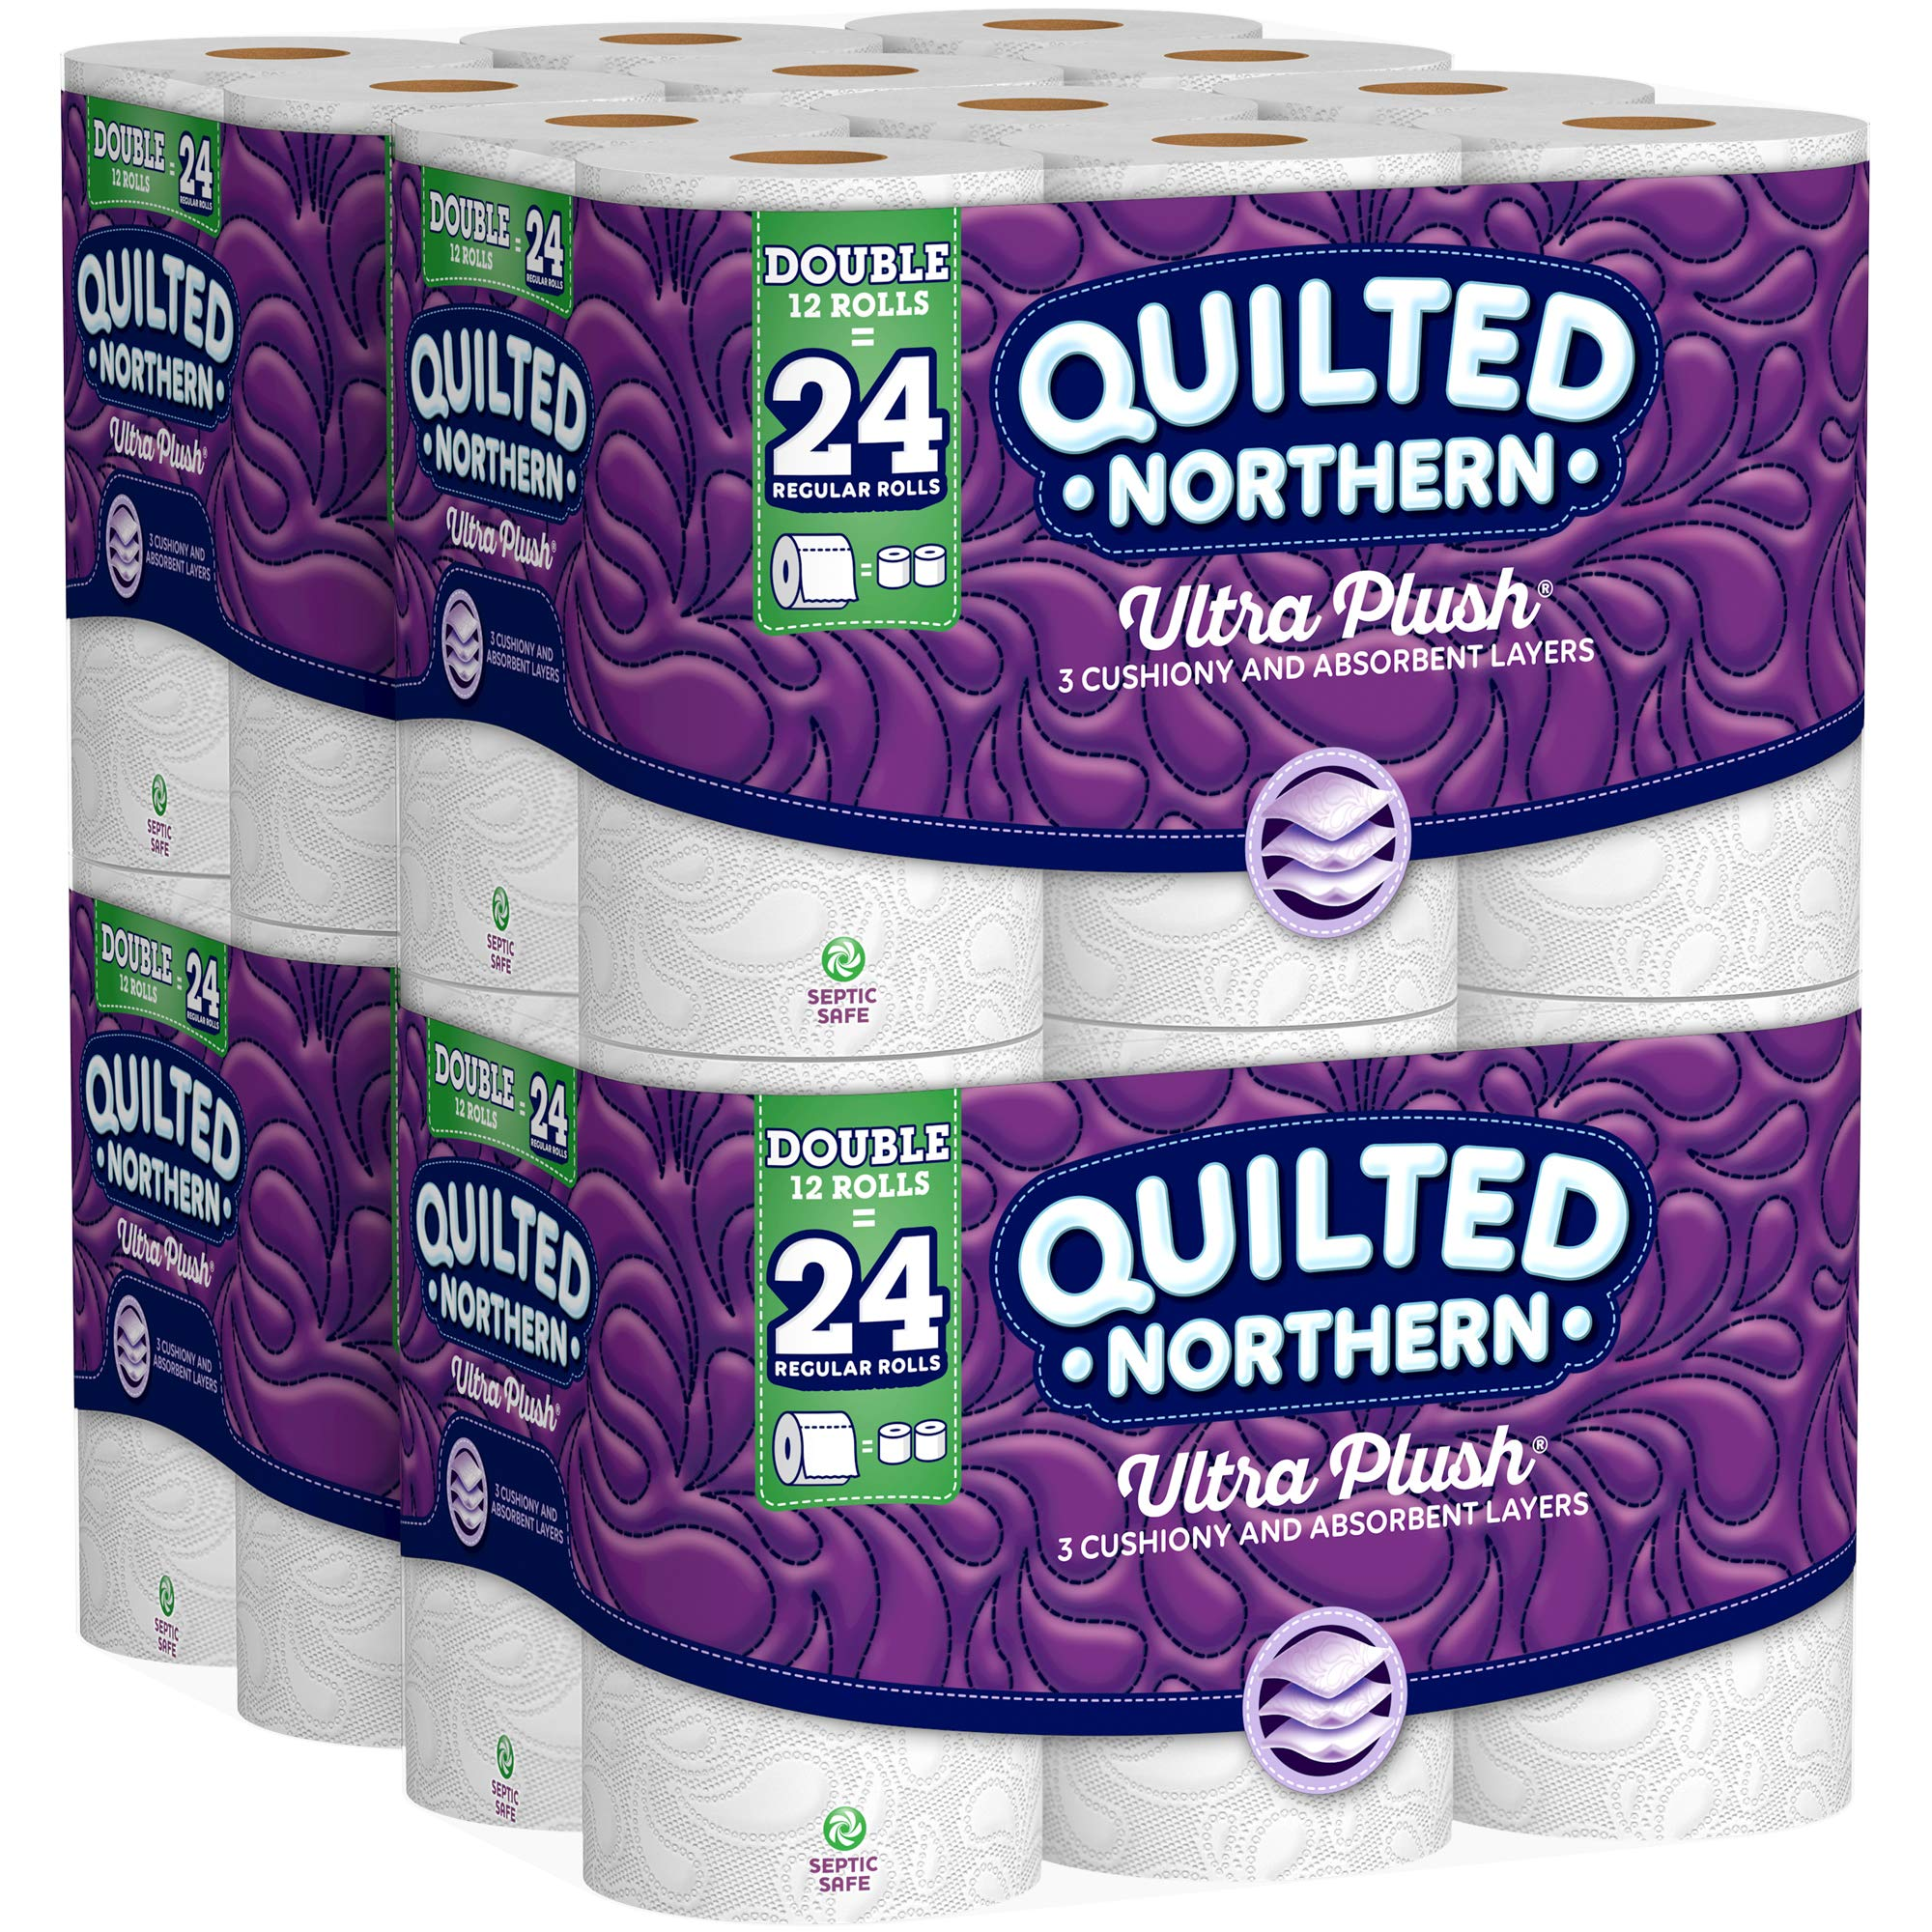 Quilted Northern Ultra Plush Toilet Paper, Pack of 48 Double Rolls (Four 12-roll packages), Equivalent to 96 Regular Rolls--Packaging May Vary by Quilted Northern